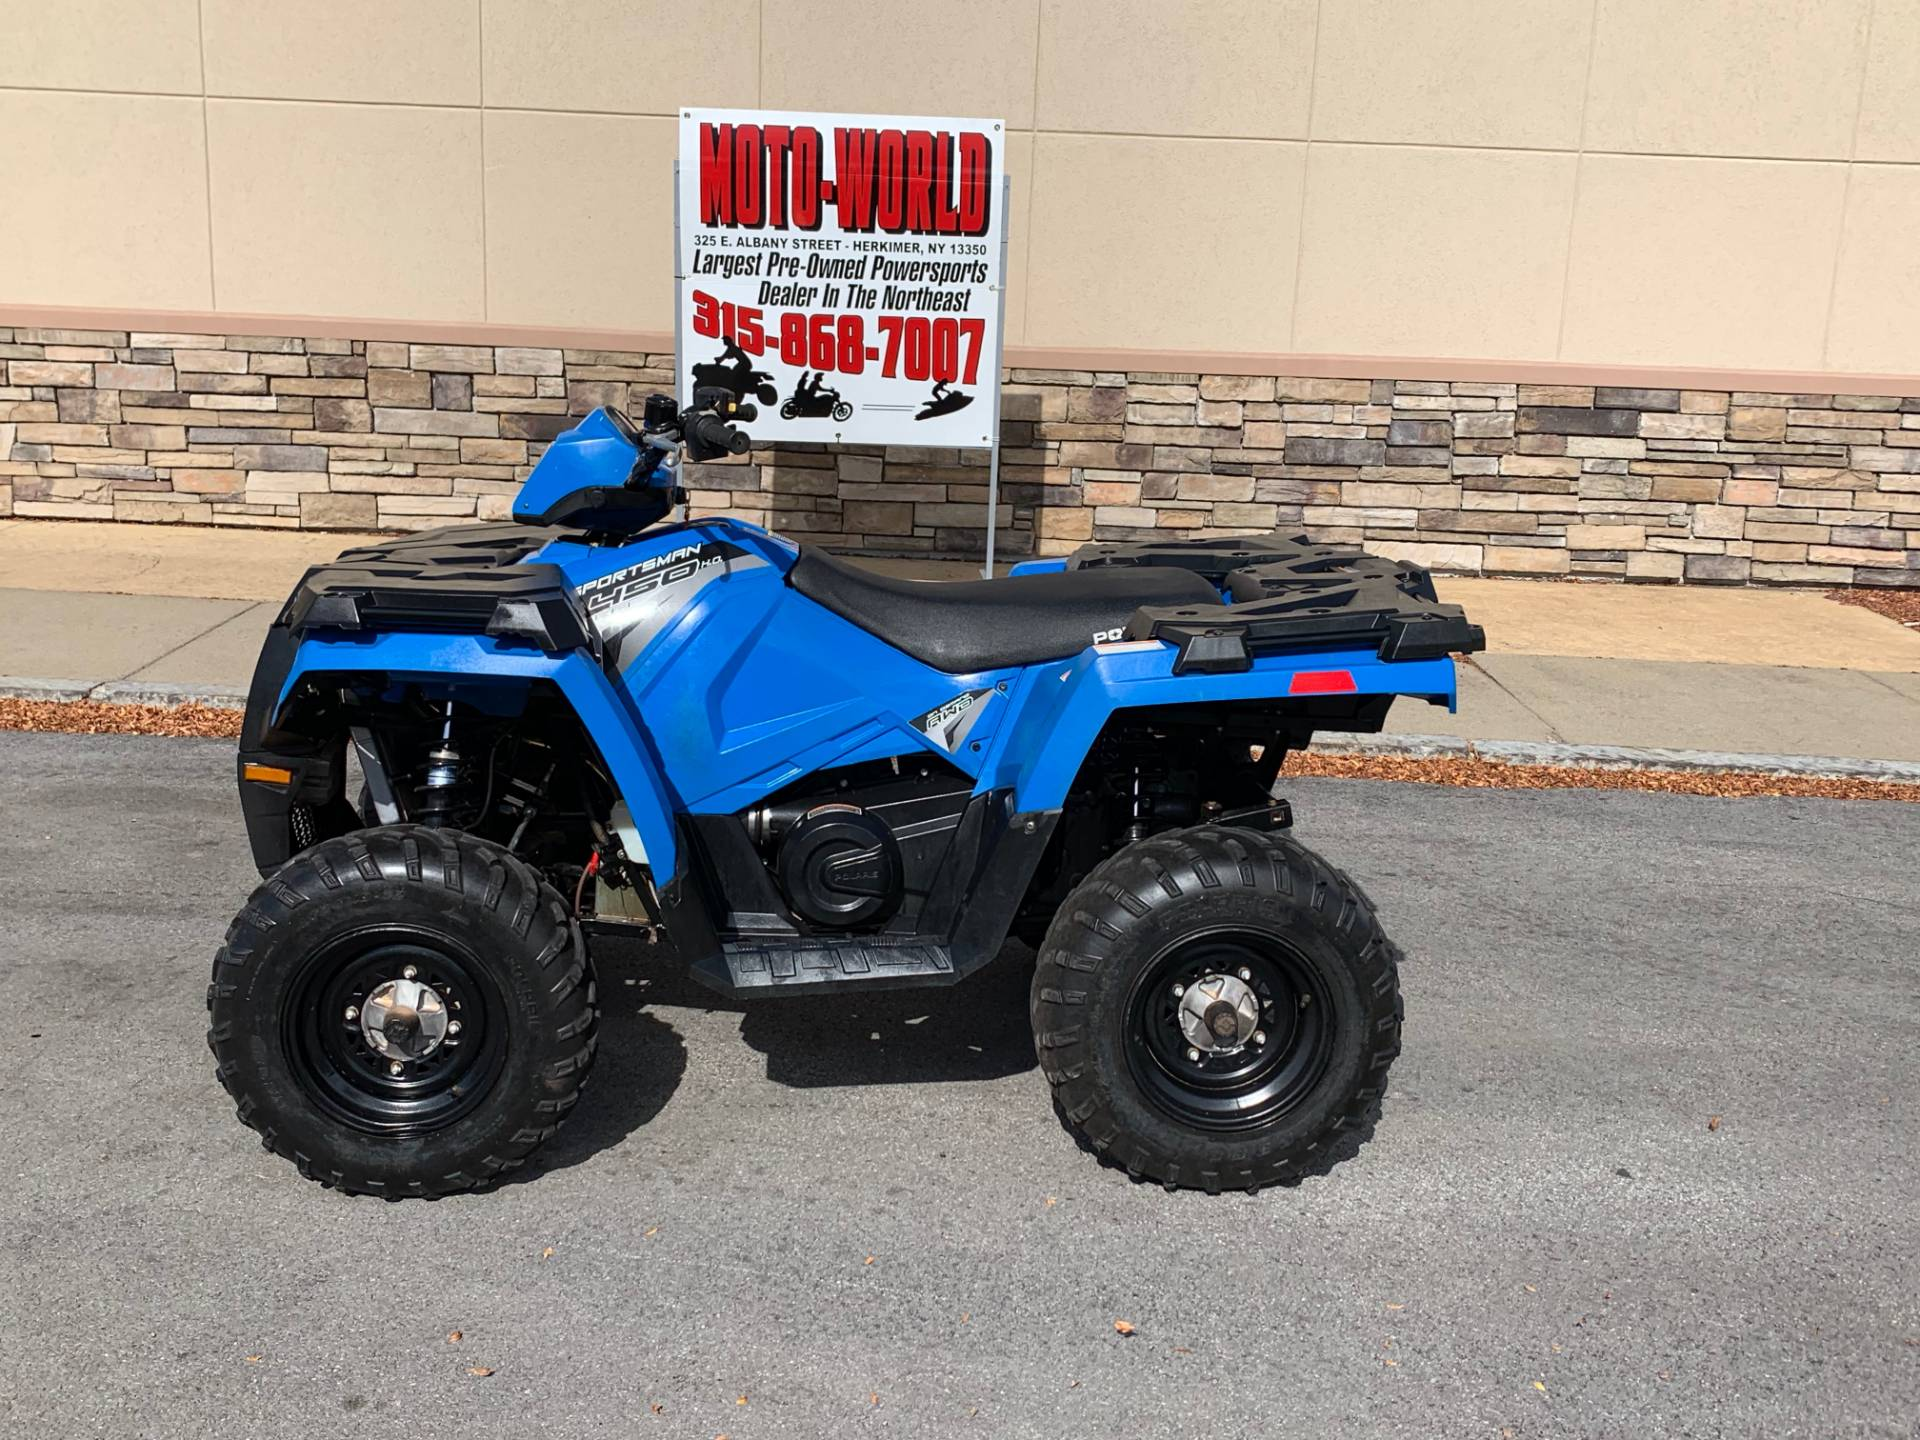 2017 Polaris Sportsman 450 H.O. in Herkimer, New York - Photo 2